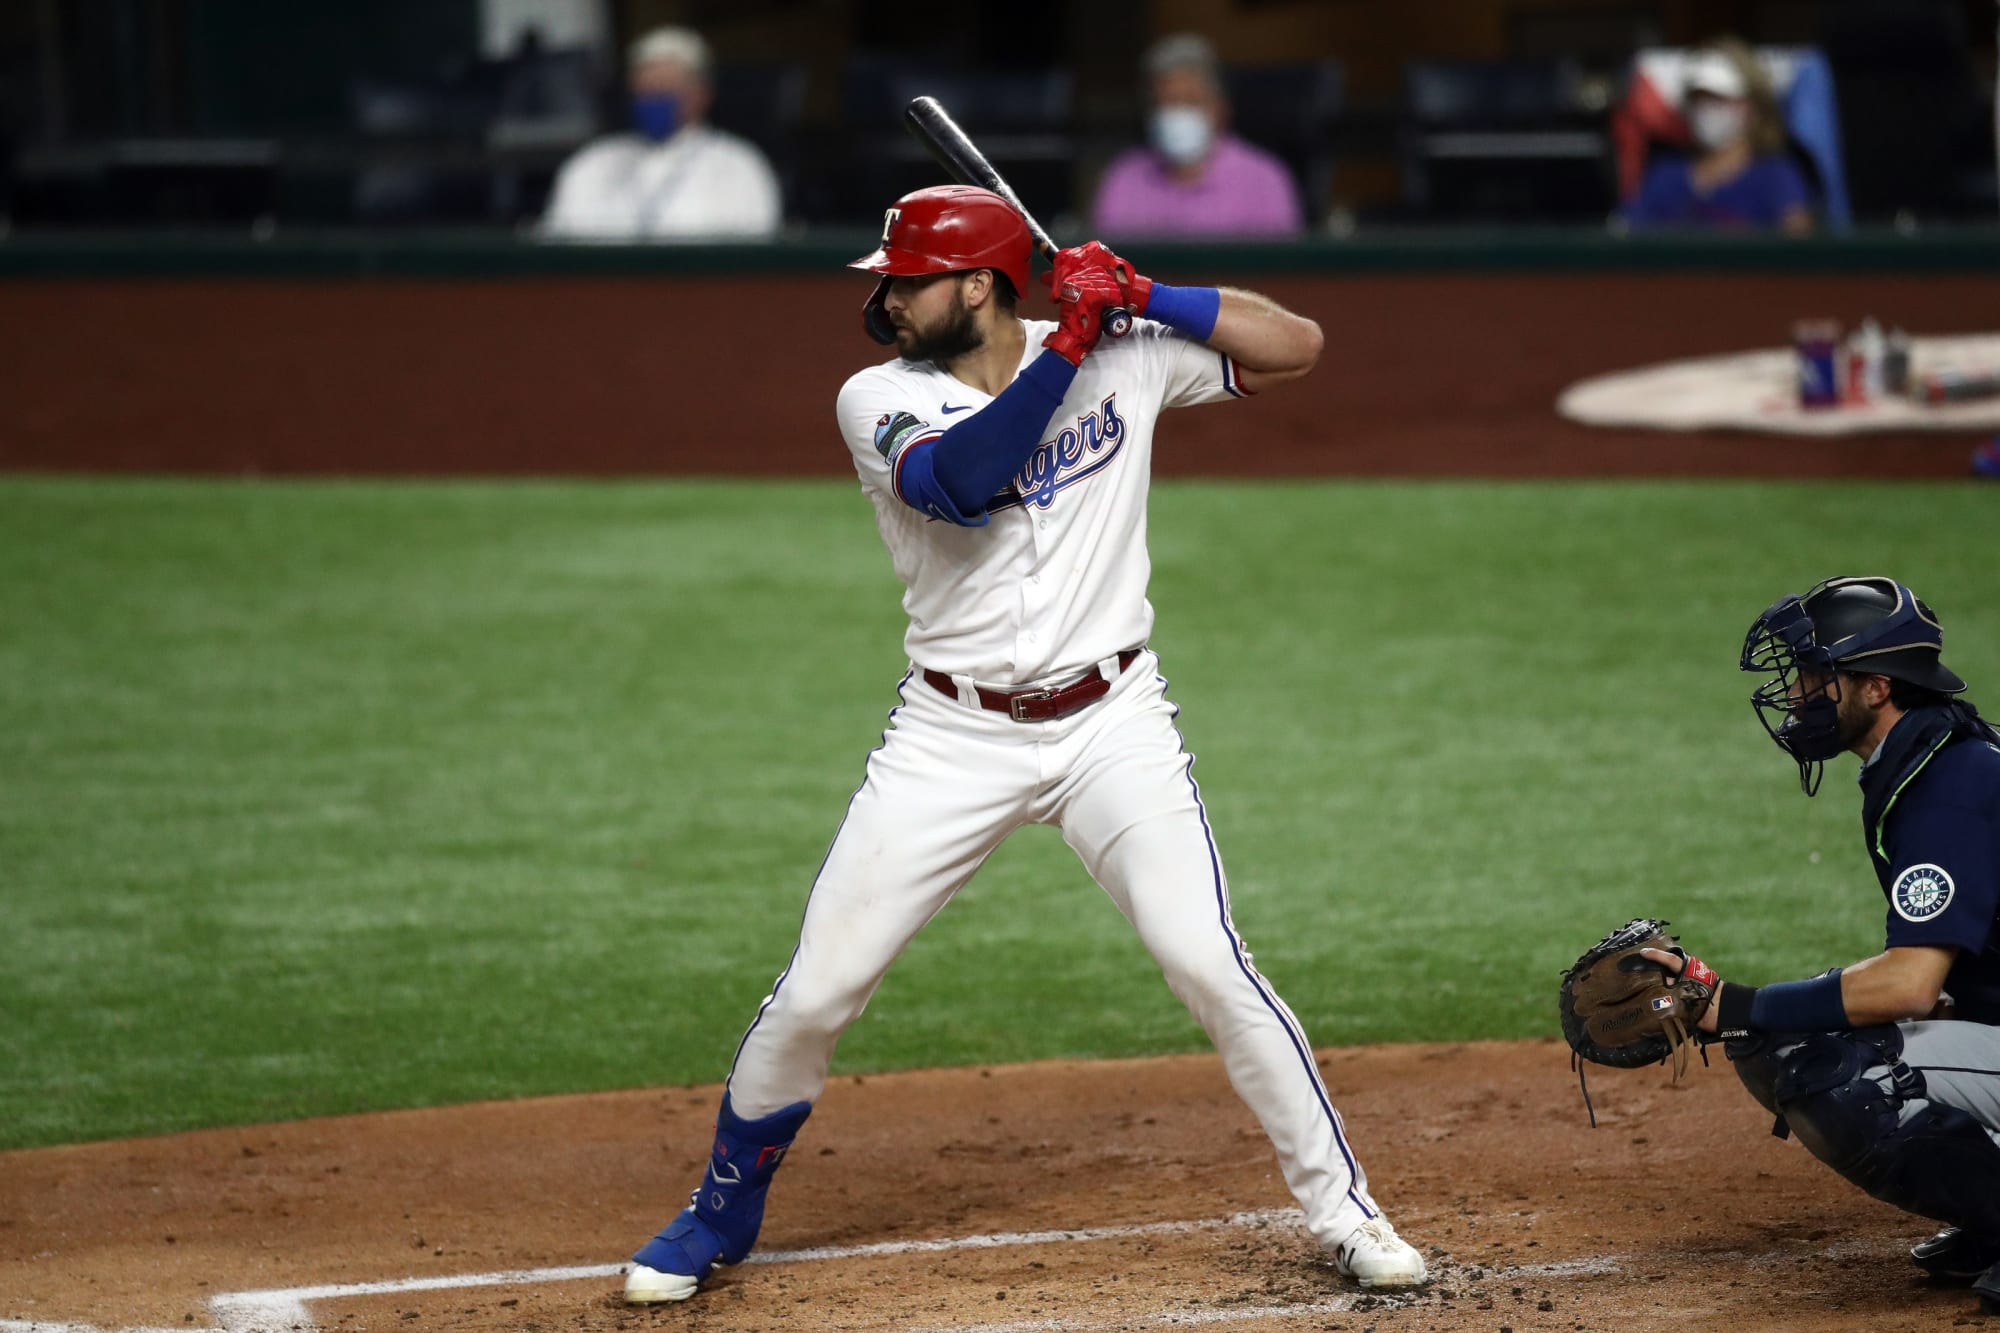 MLB trade grades: Yankees acquire the slugger they needed in Joey Gallo